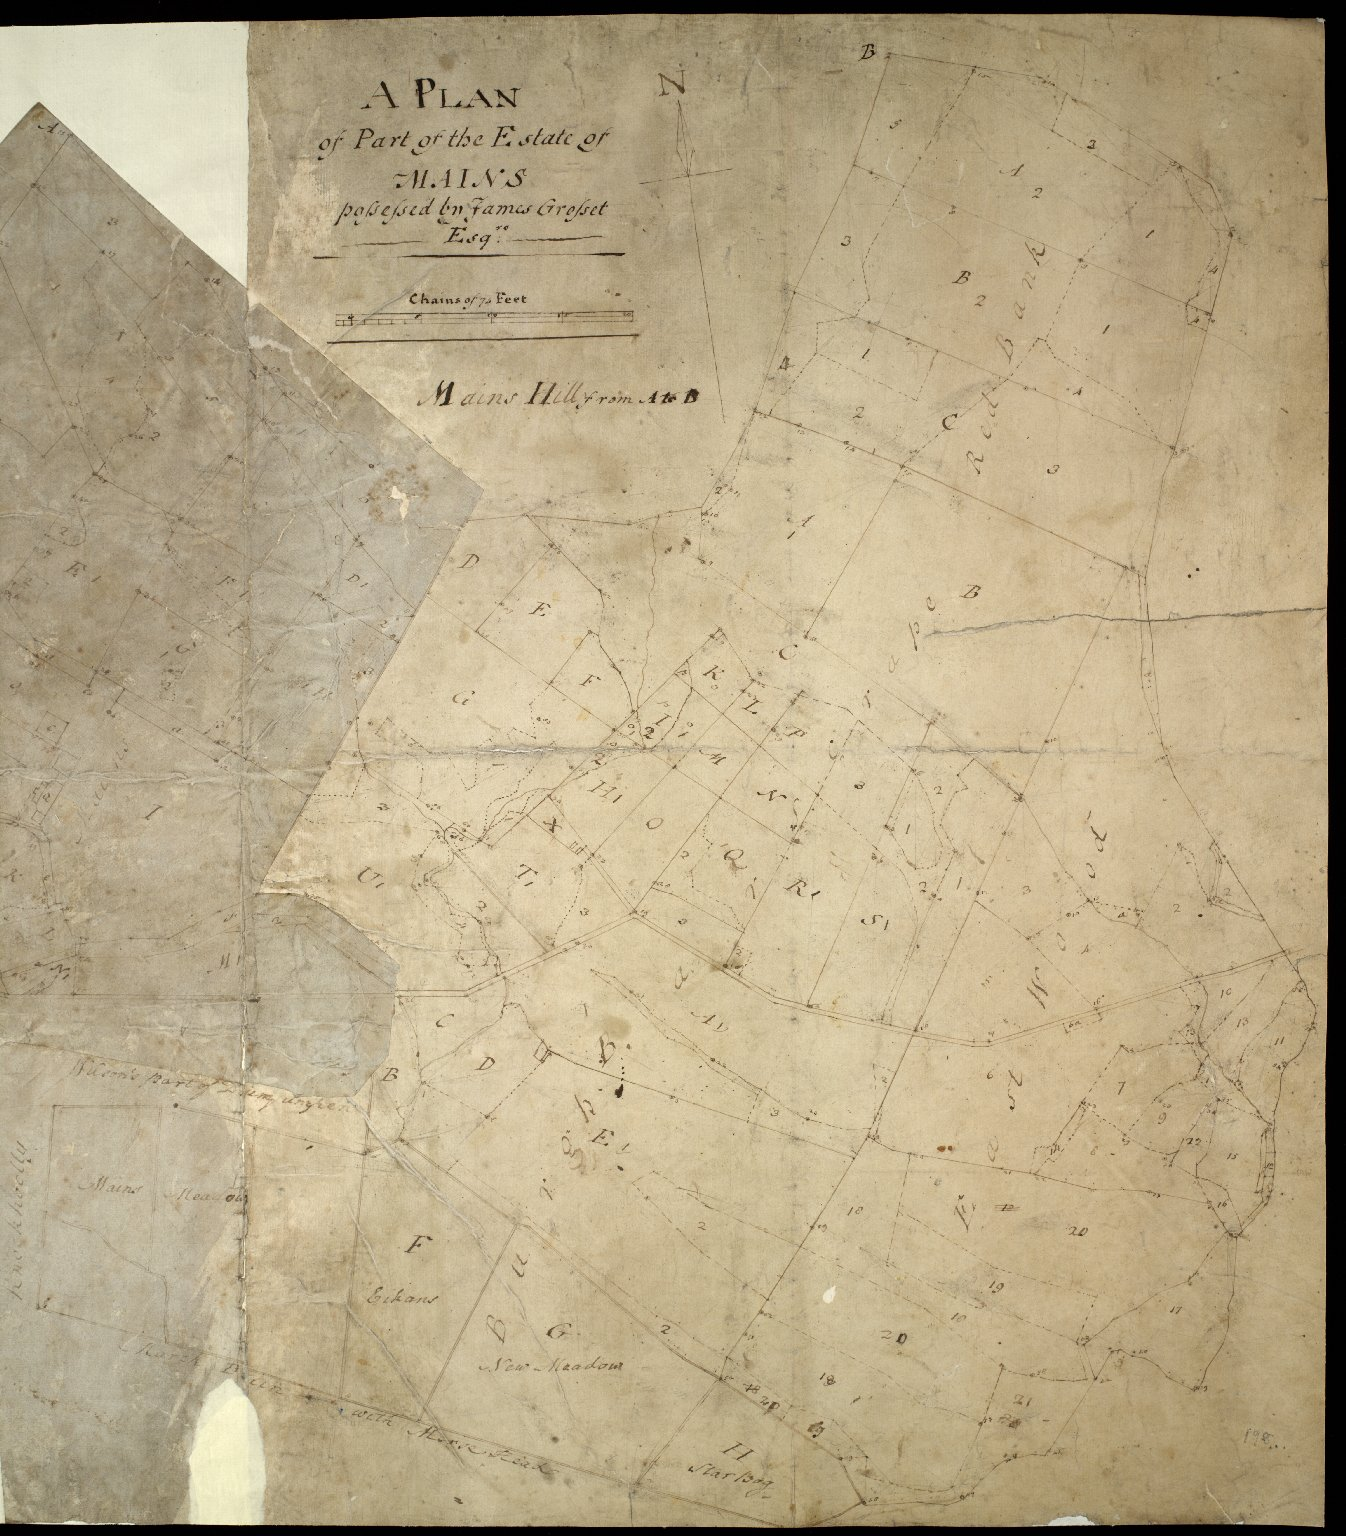 A Plan of part of the estate of Mains : possessed by James Grosset Esqre. [1 of 2]